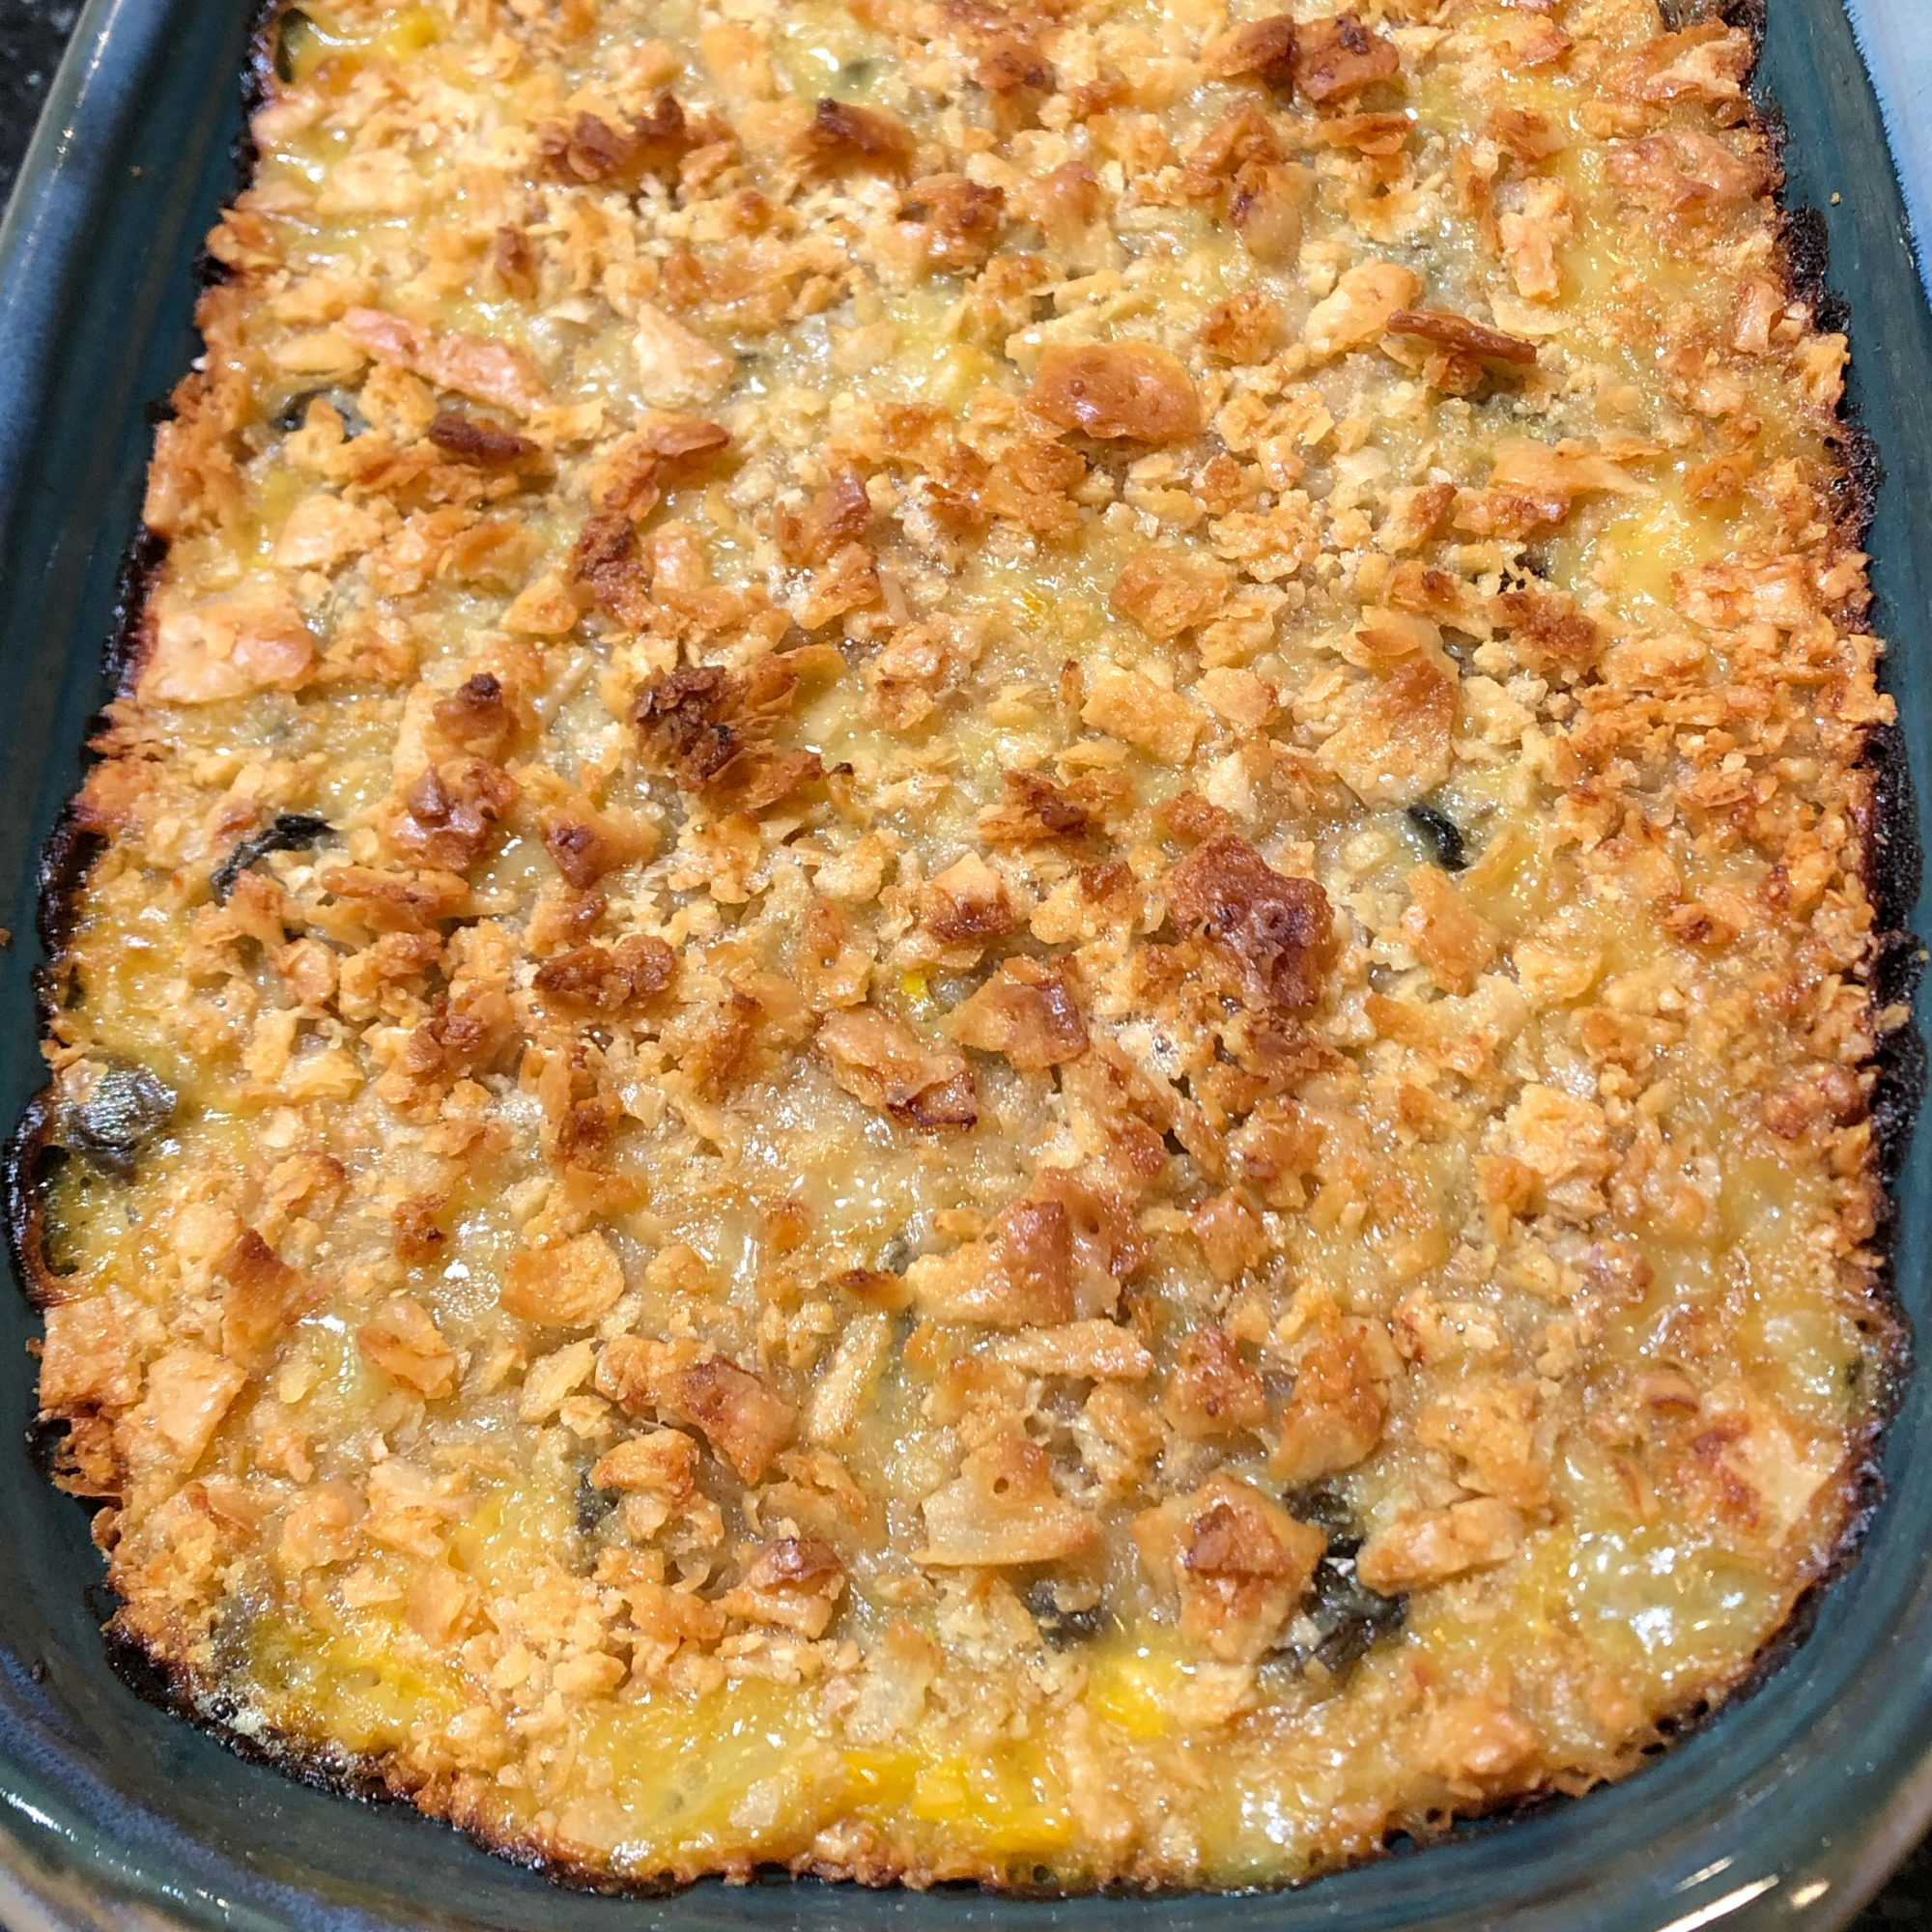 oyster casserole with cheesy topping in a blue stoneware dish